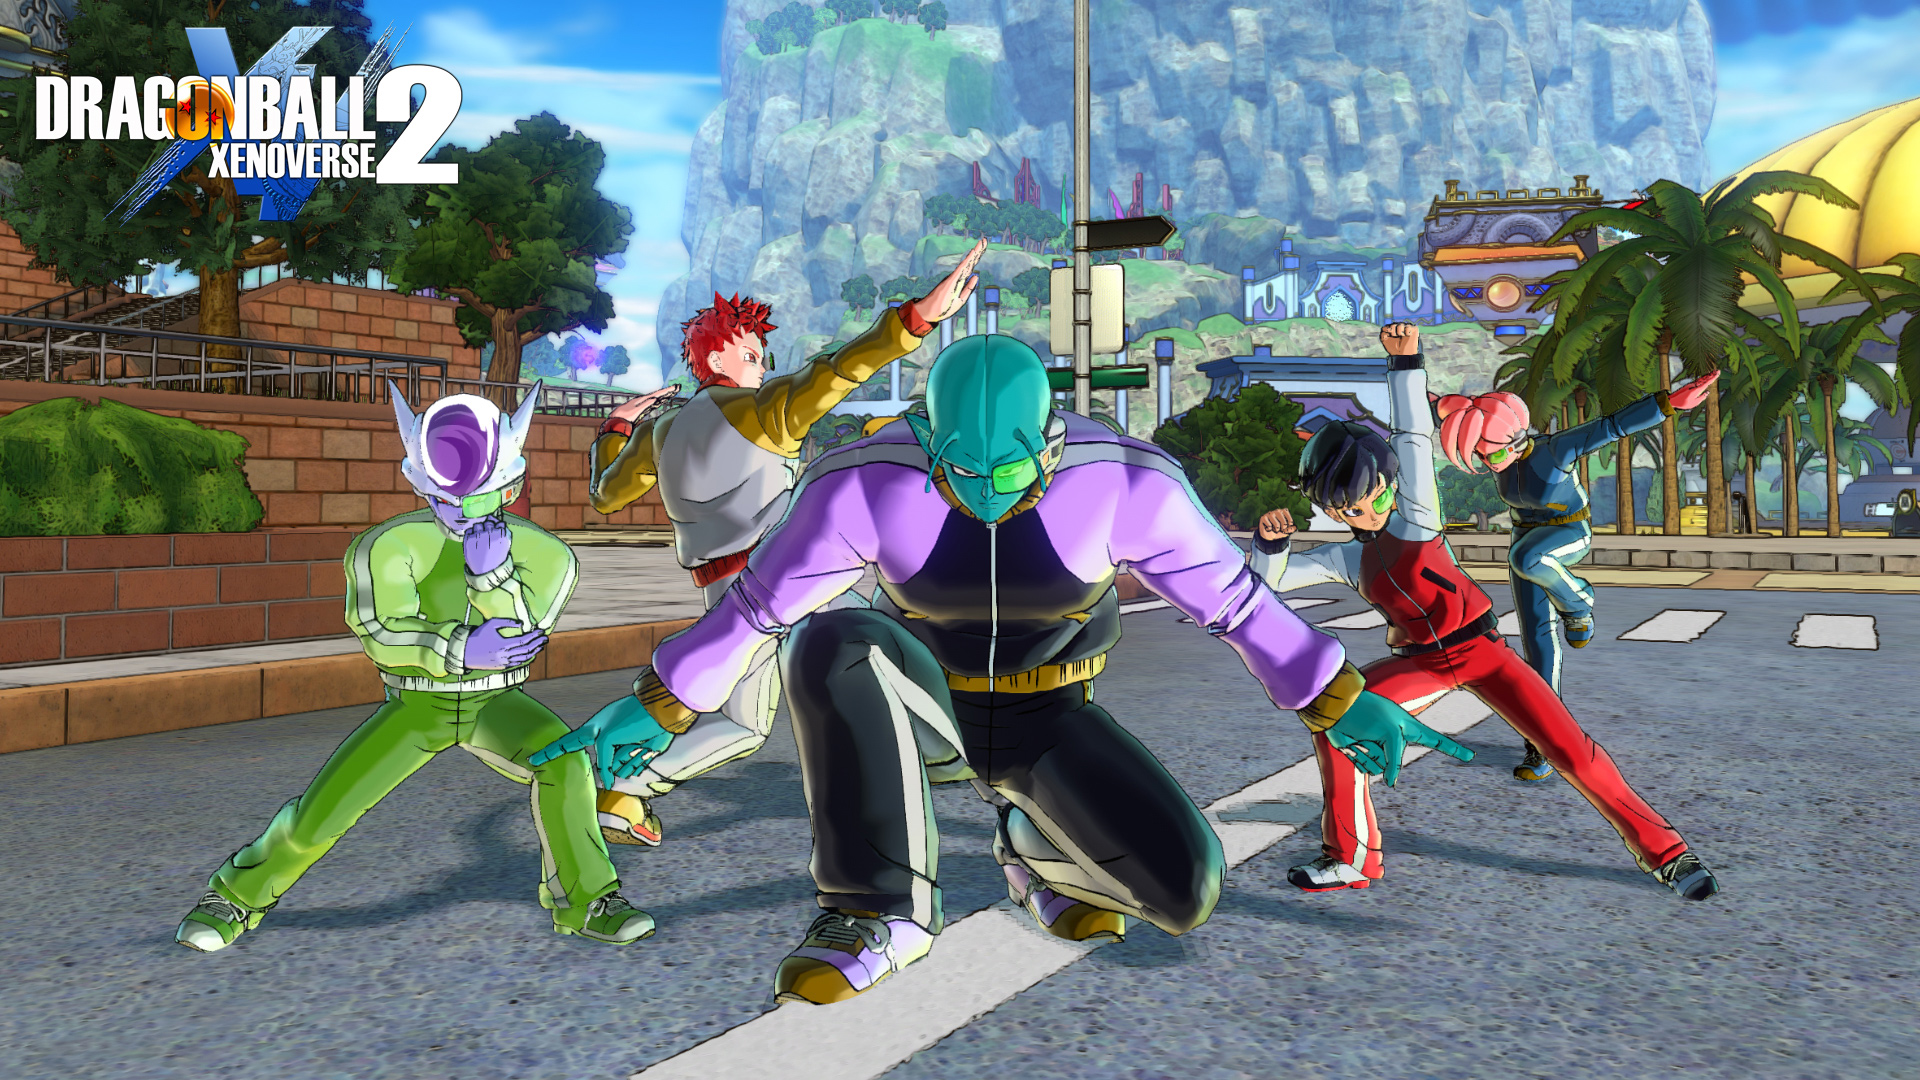 Frieza's forces are coming for Conton City in Dragon Ball